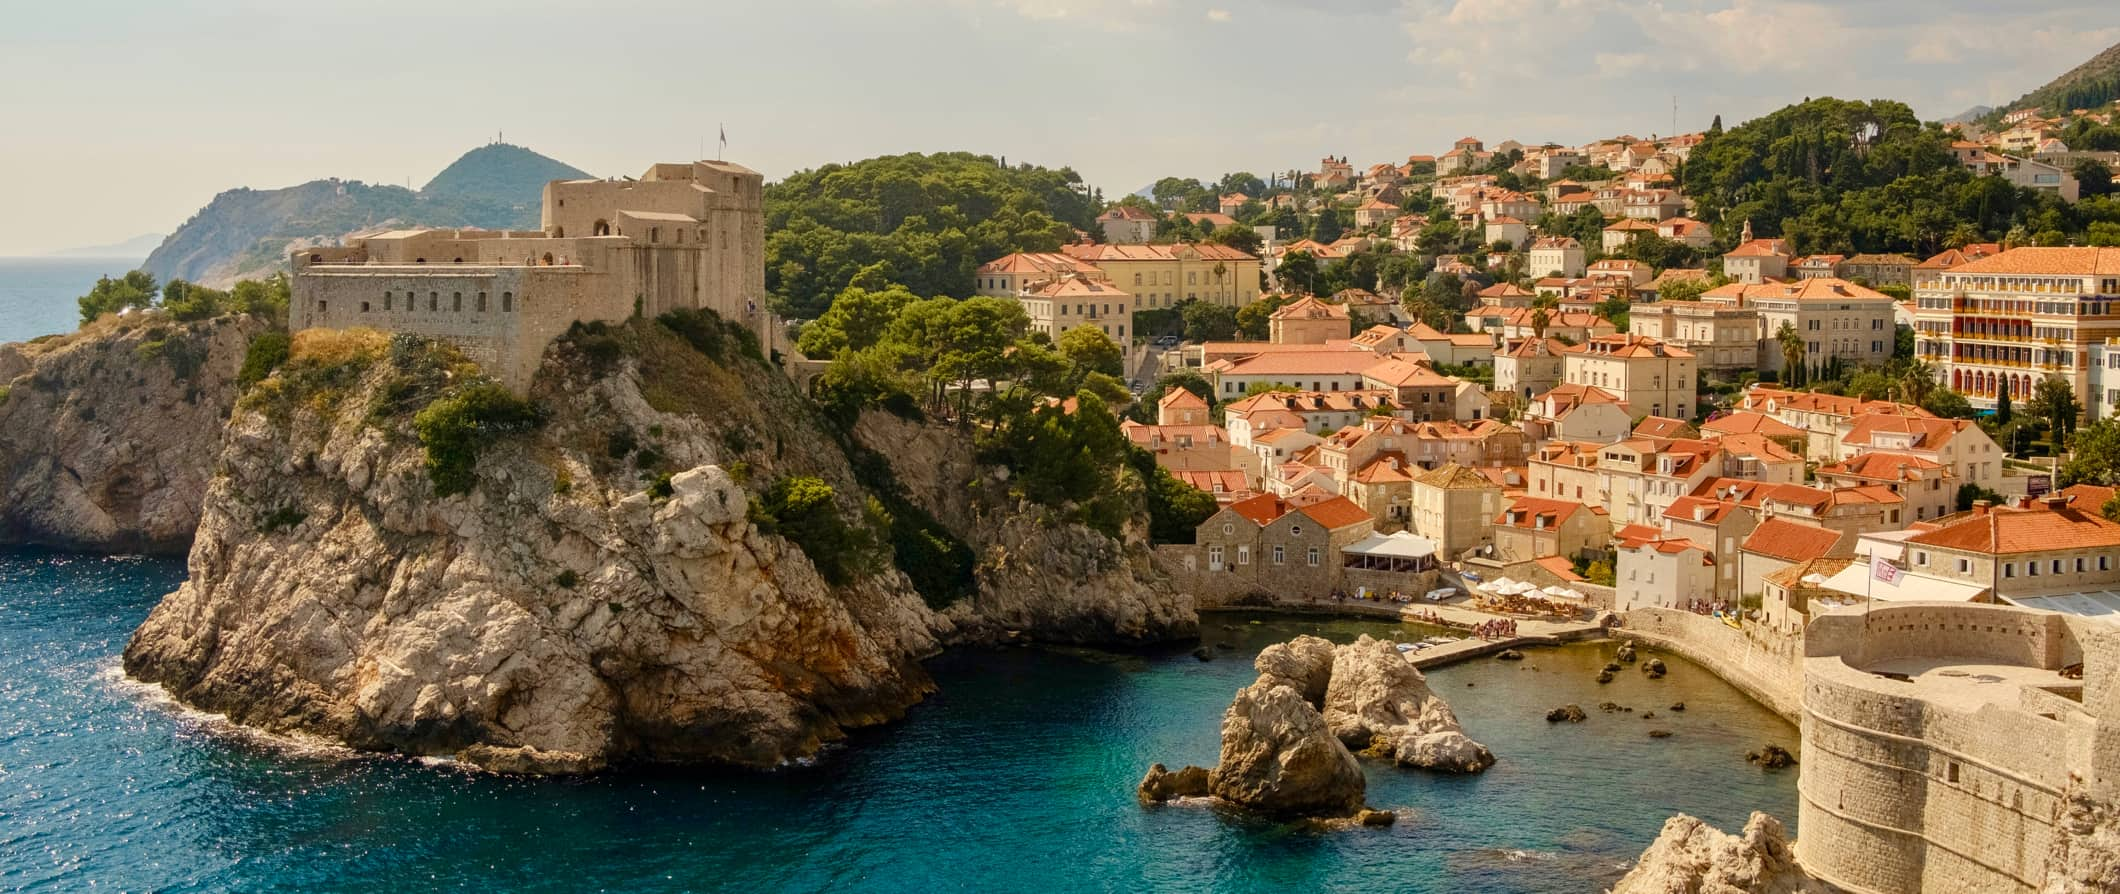 The rugged coast of Croatia enveloped by historic buildings and architecture